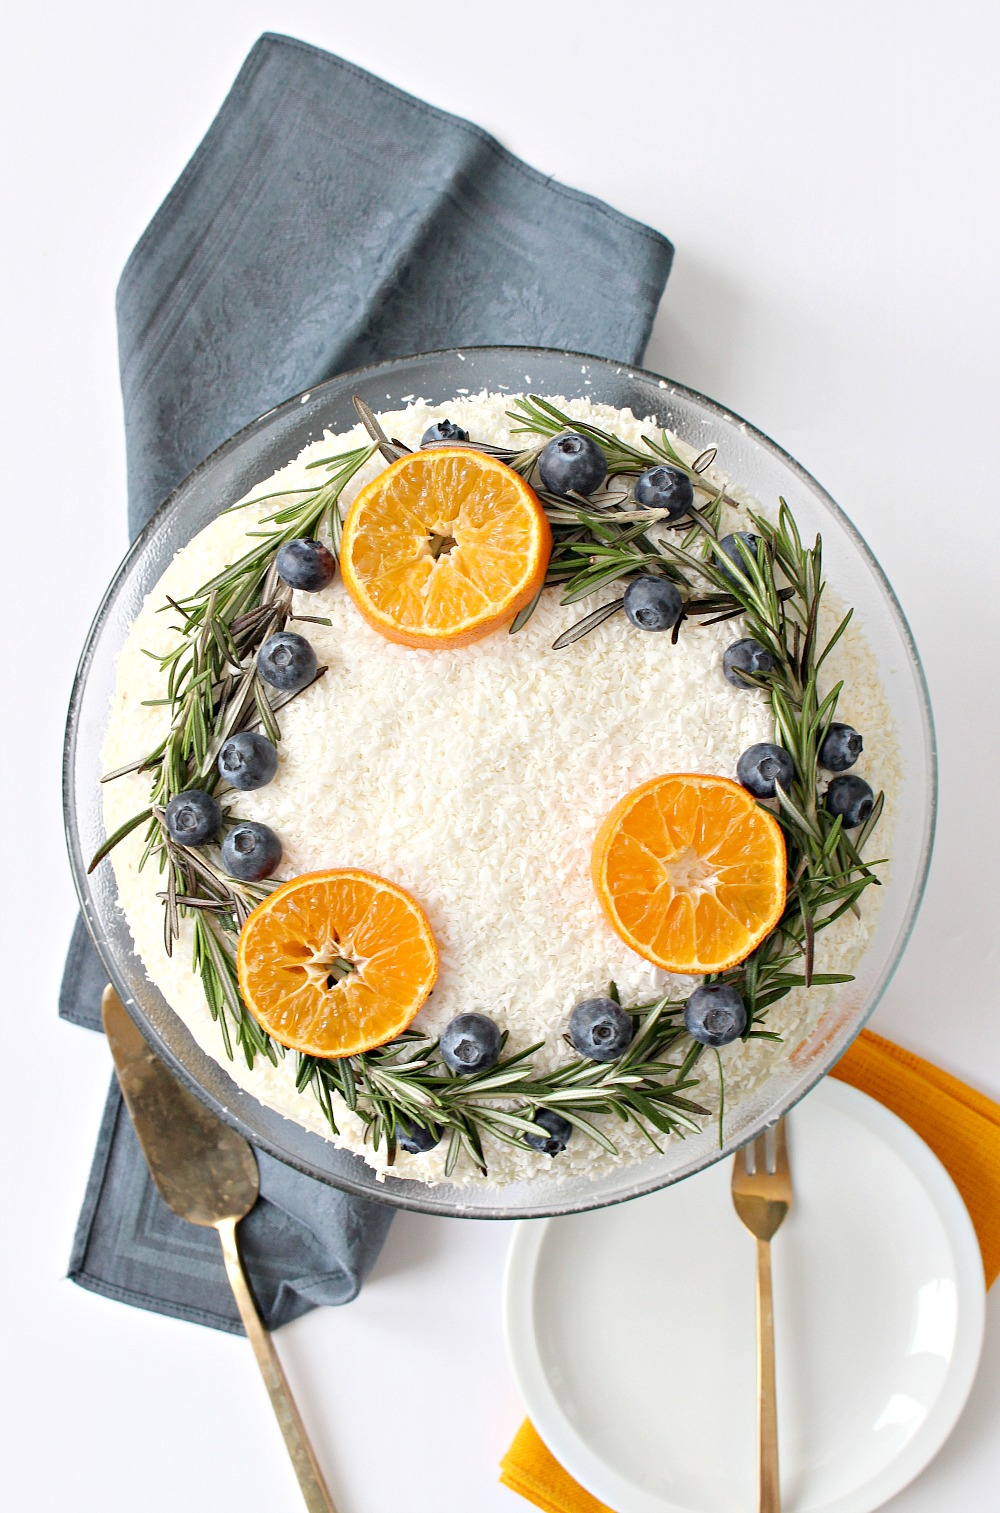 Carrot cake with natural wreath decoration festive for Baking oranges for christmas decoration